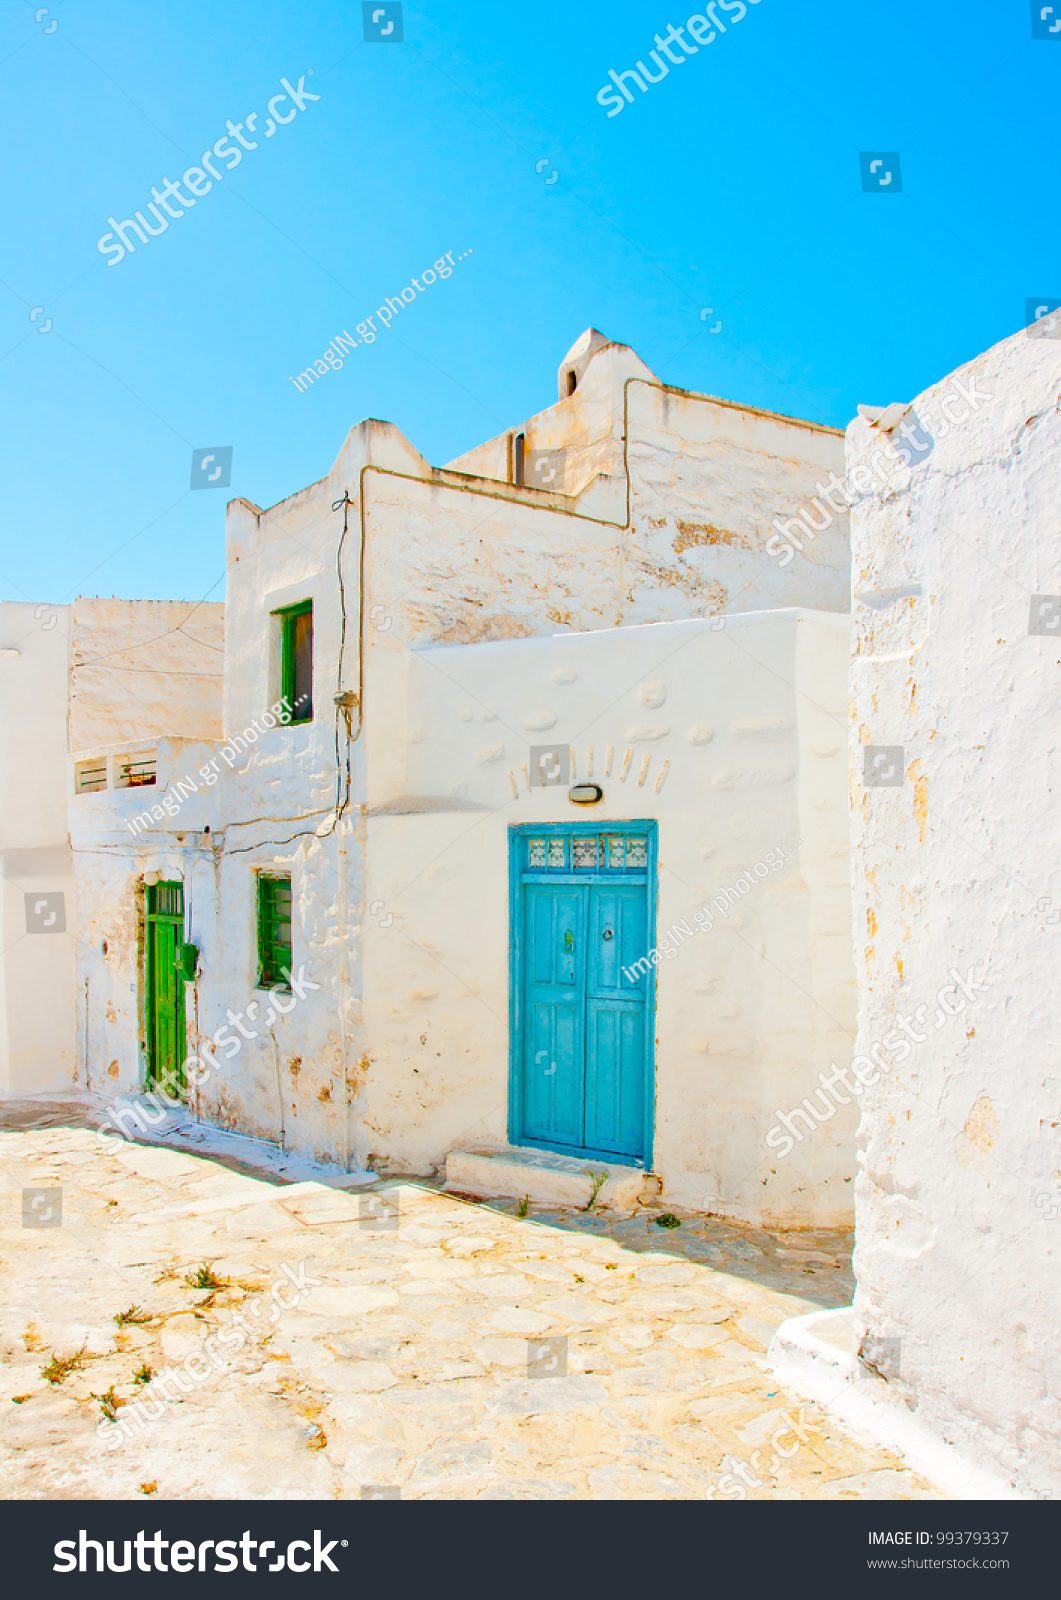 Old beautiful traditional house in chora the capital of amorgos island - Beautiful Stone Made Road With Old Traditional Houses In Chora The Capital Of Amorgos Island In